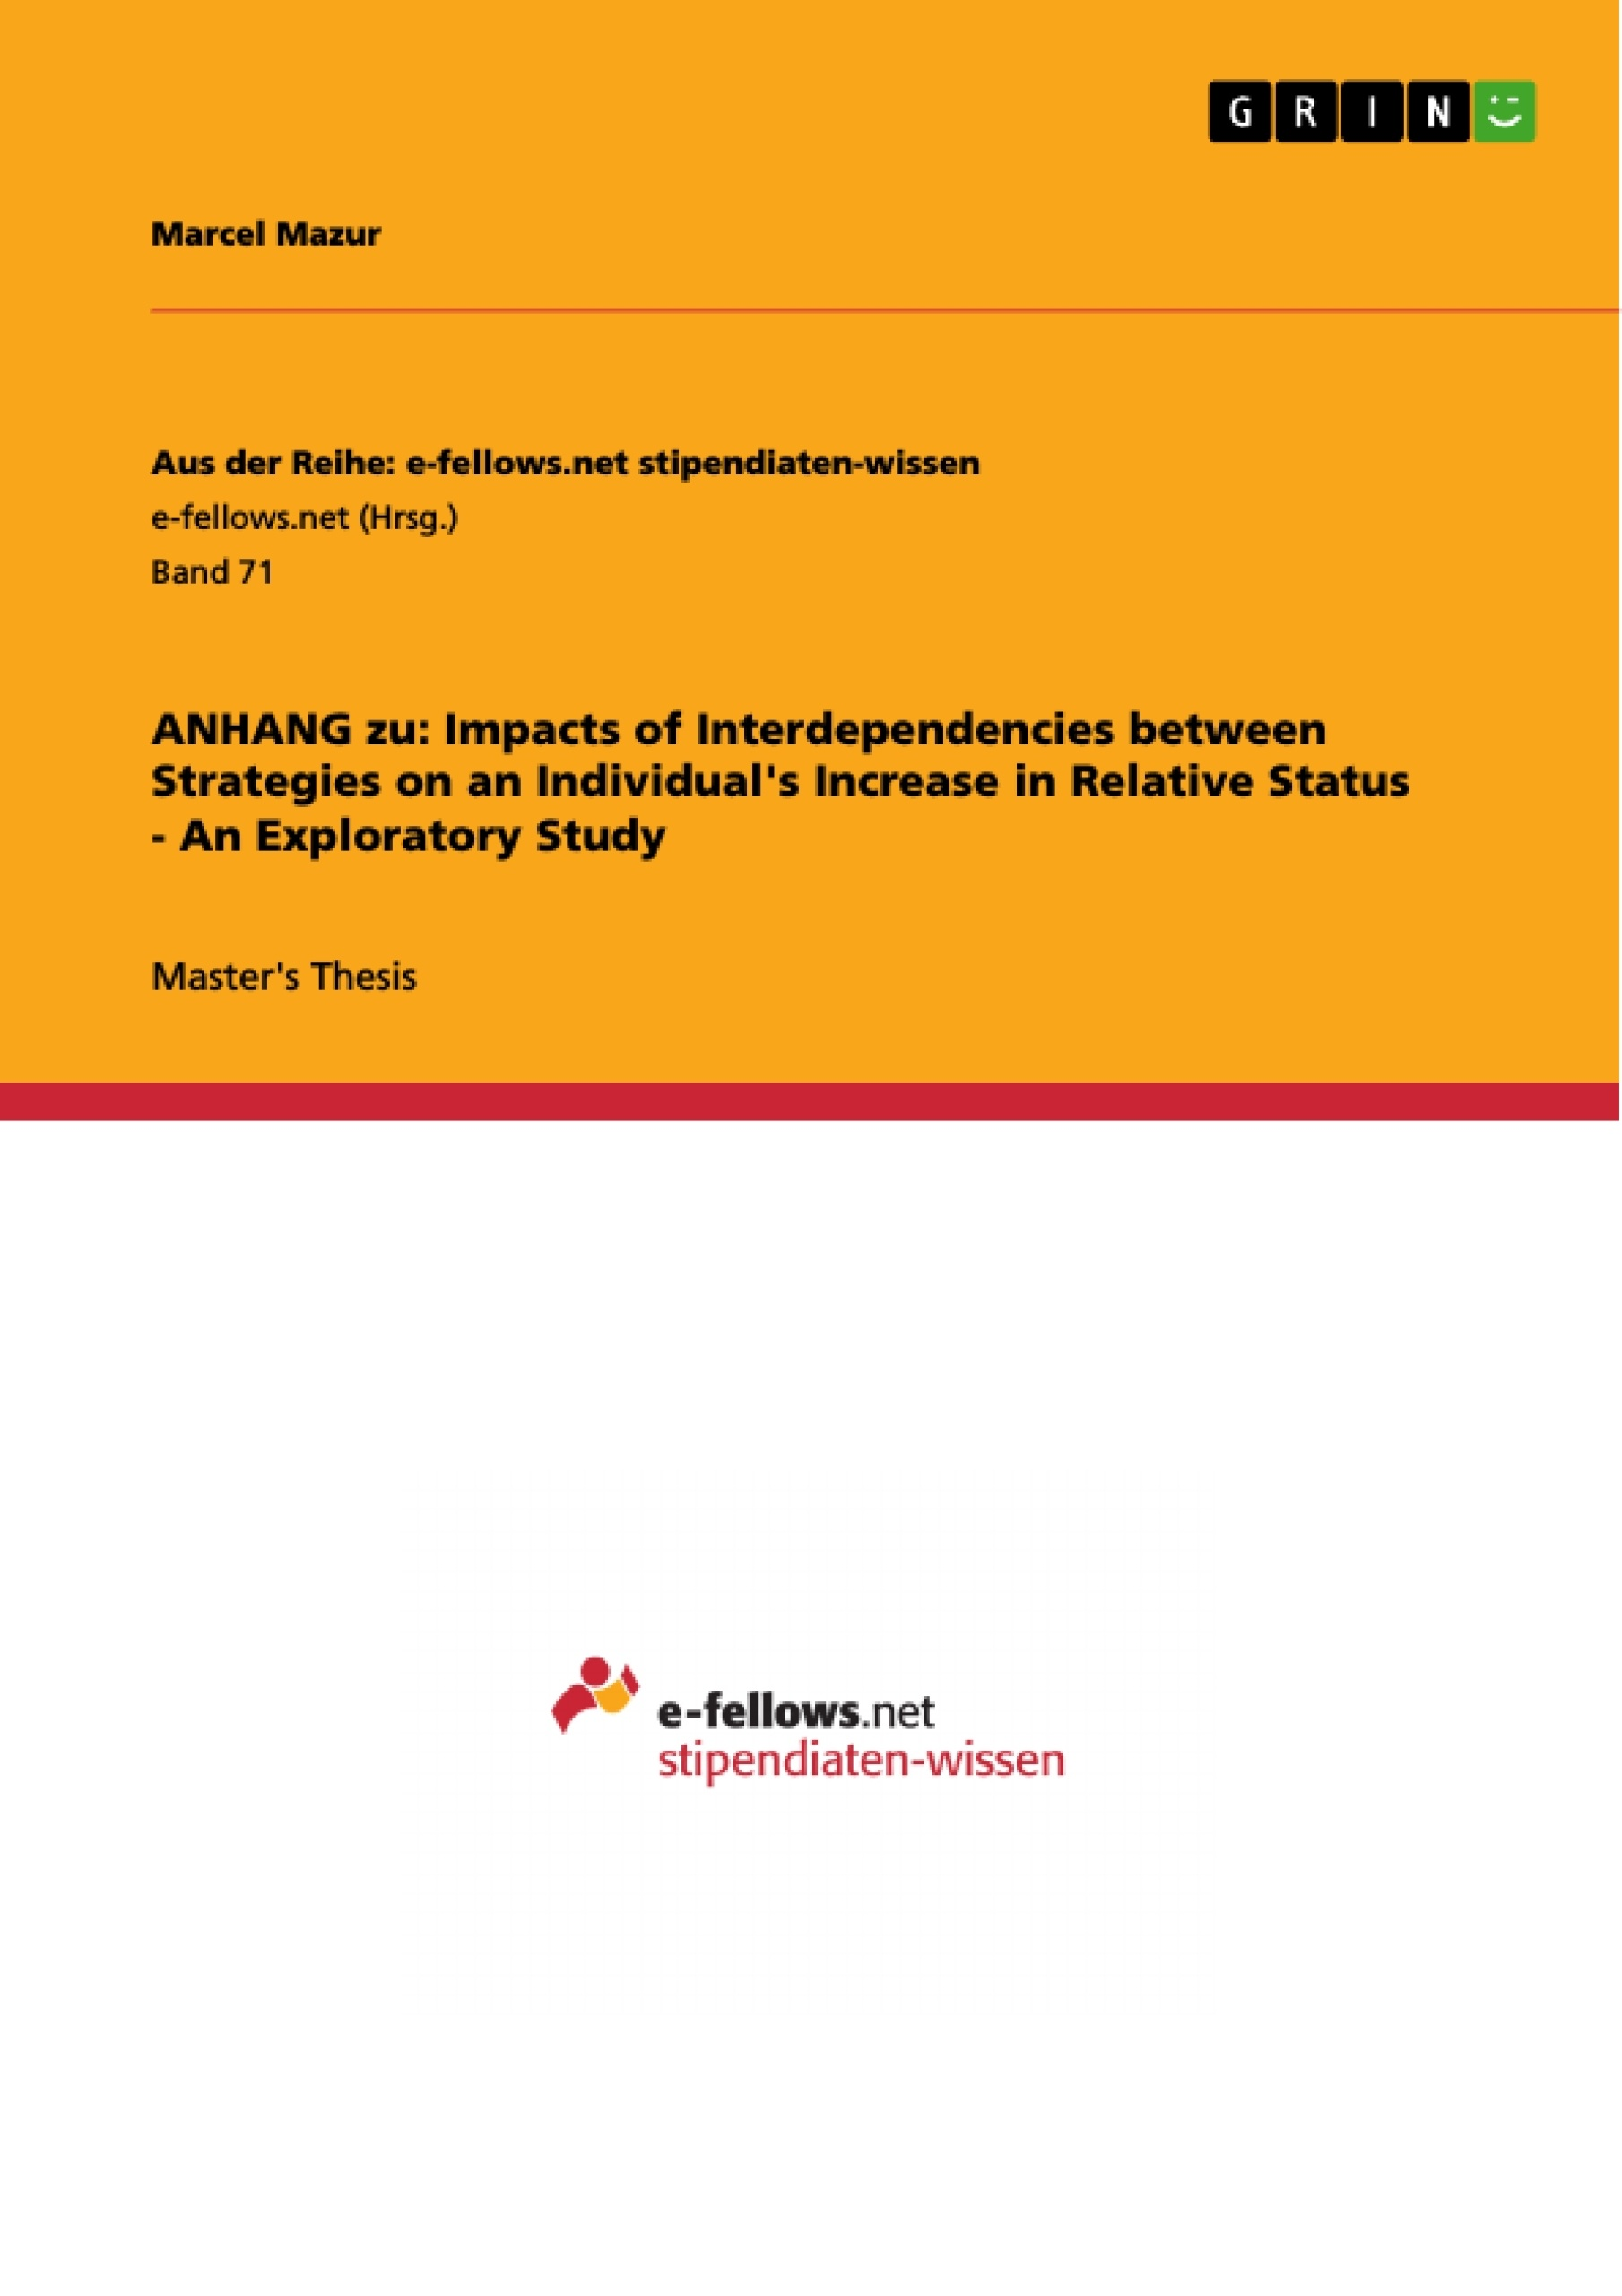 Title: ANHANG zu: Impacts of Interdependencies between Strategies on an Individual's Increase in Relative Status - An Exploratory Study